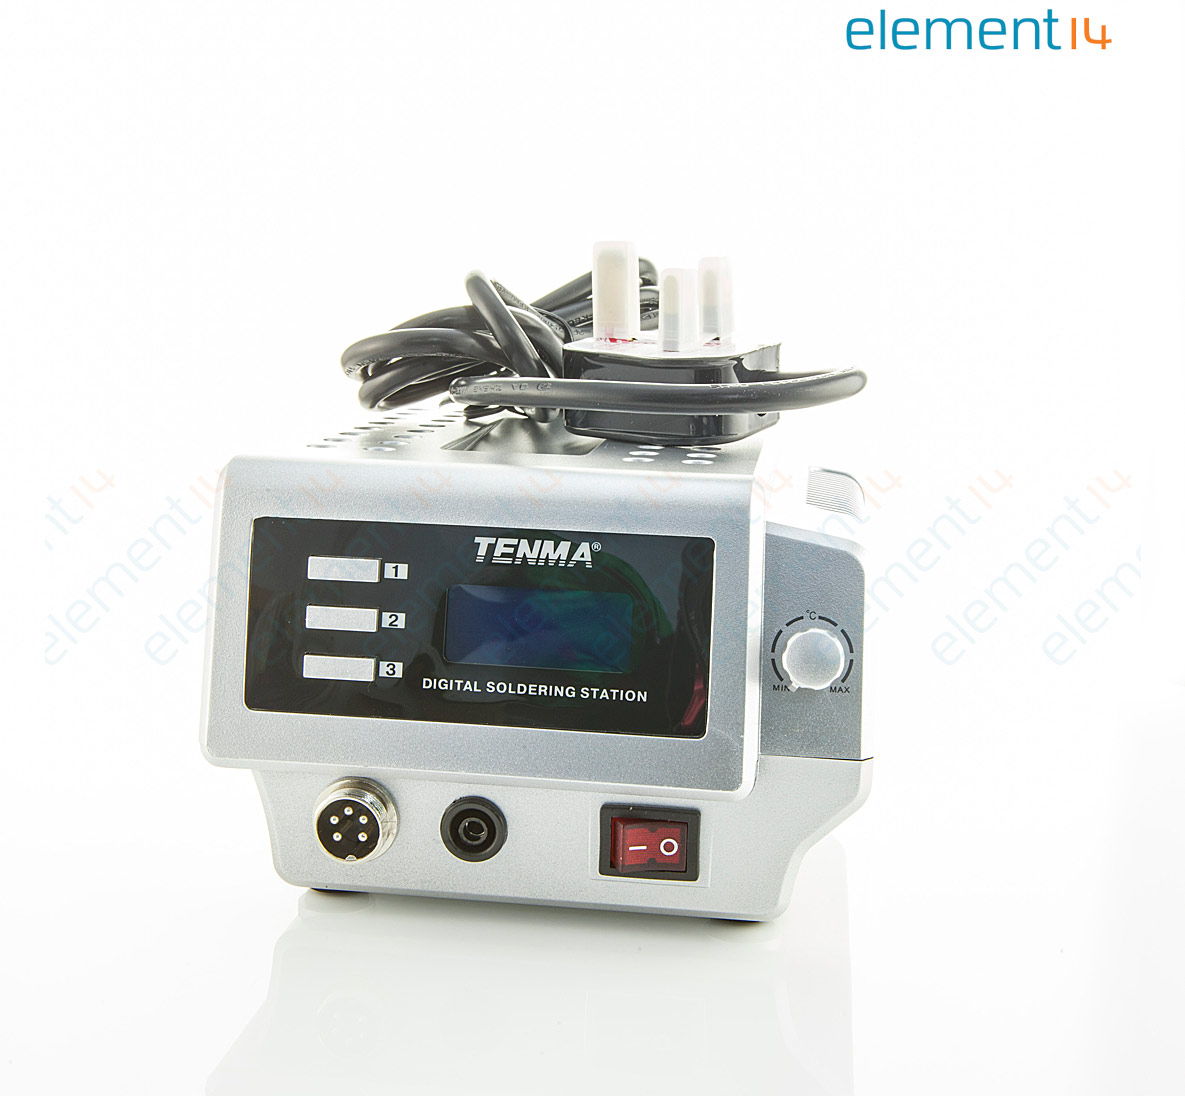 AT60D-UK TENMA, 220V, 60W UK Plug Type Digital Soldering Station